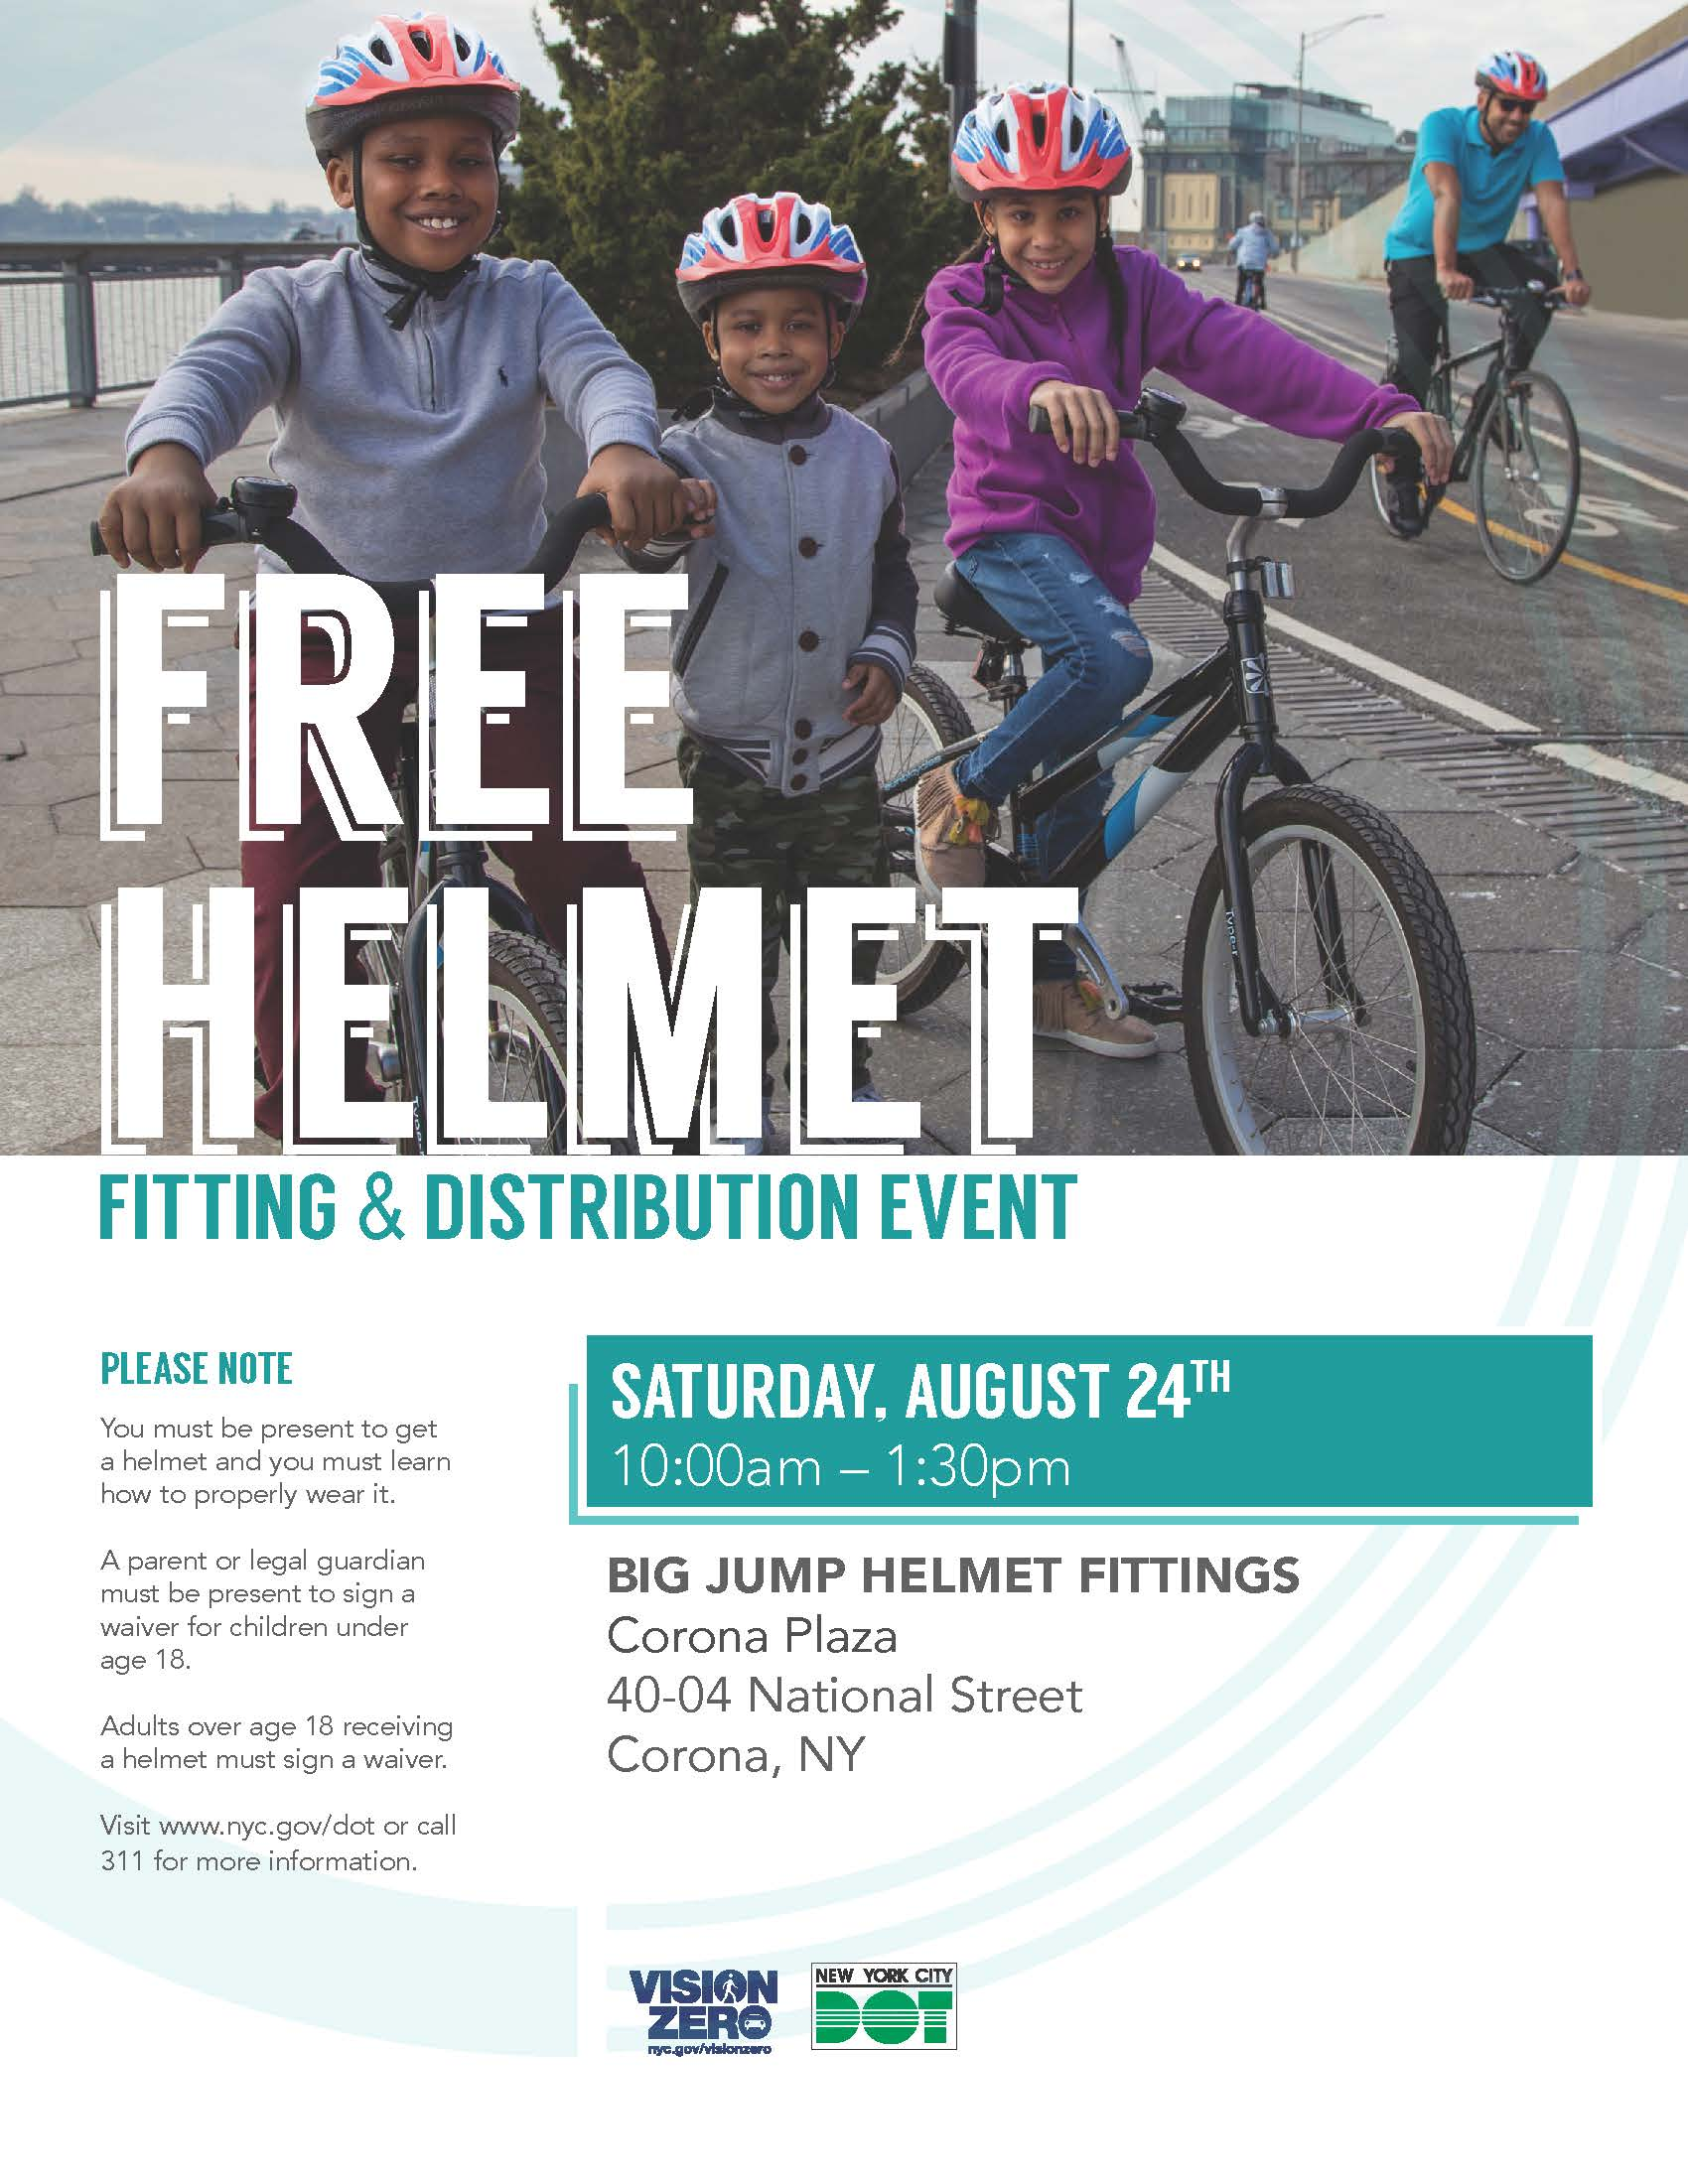 Free Helmet Giveaway Flyer August 24, 2019 English